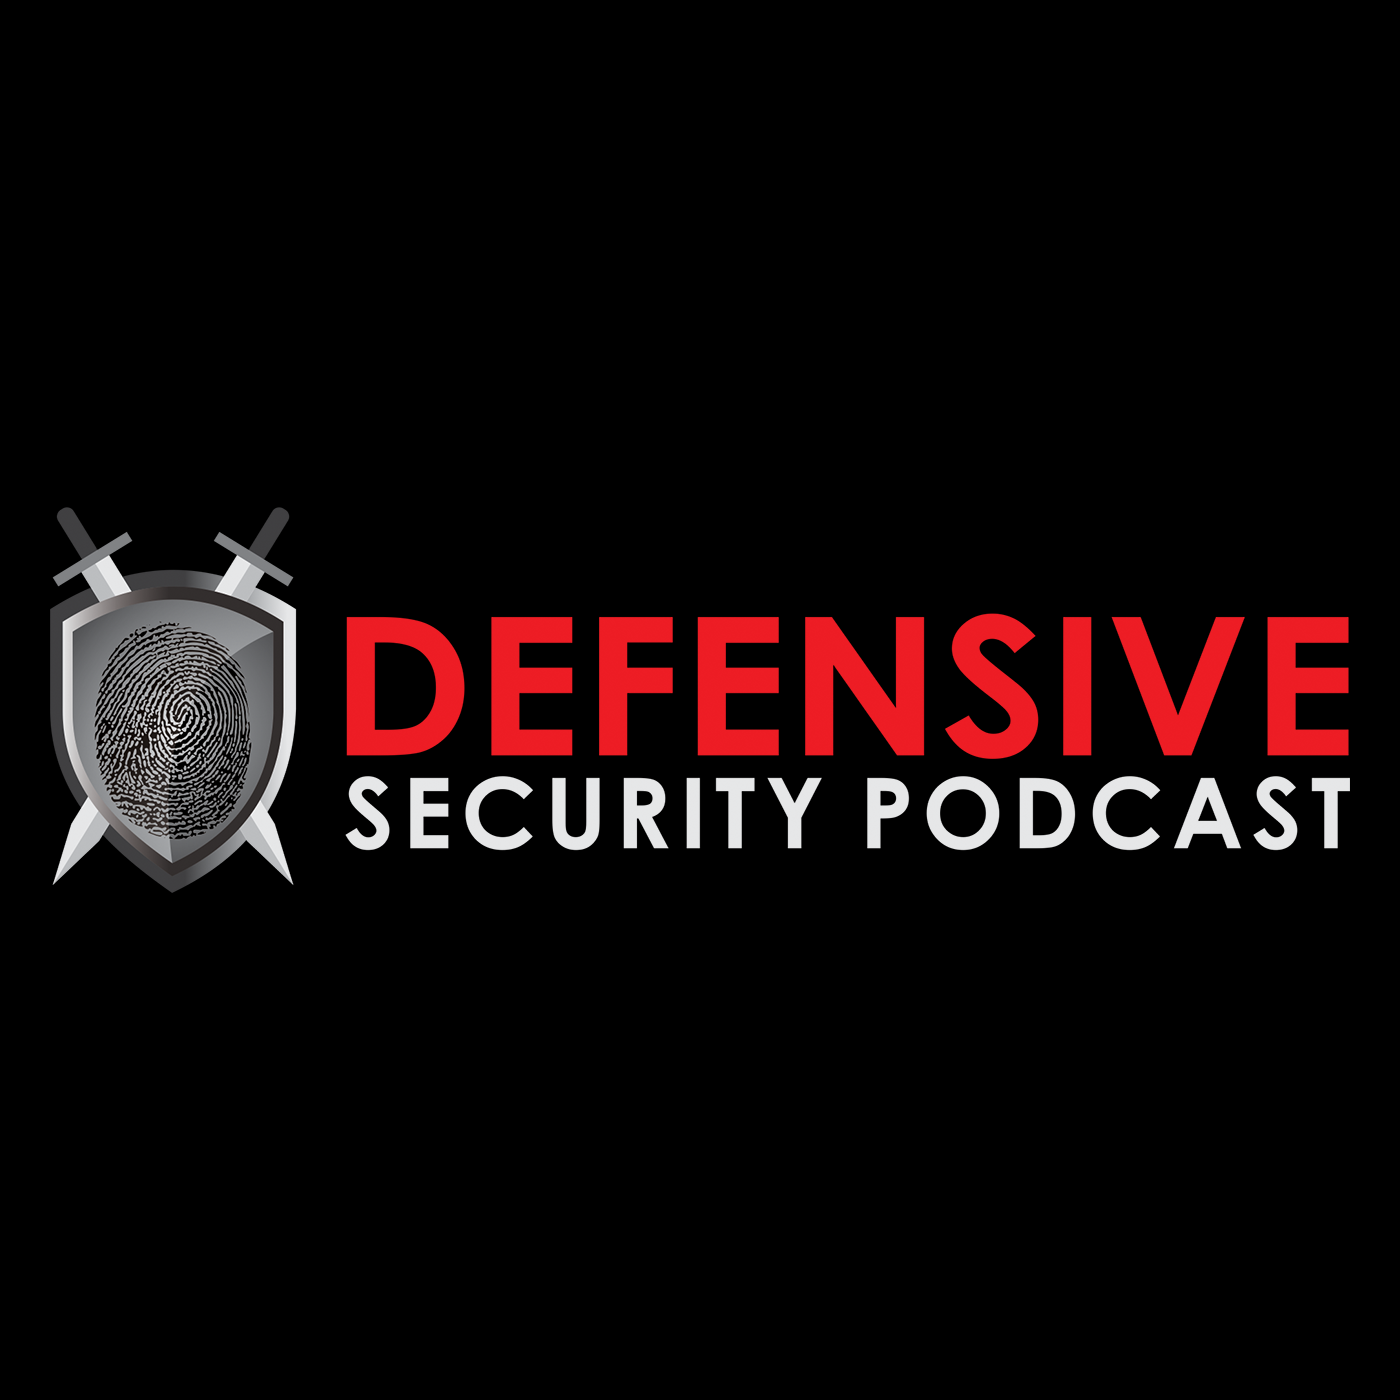 Defensive Security Podcast Episode 248